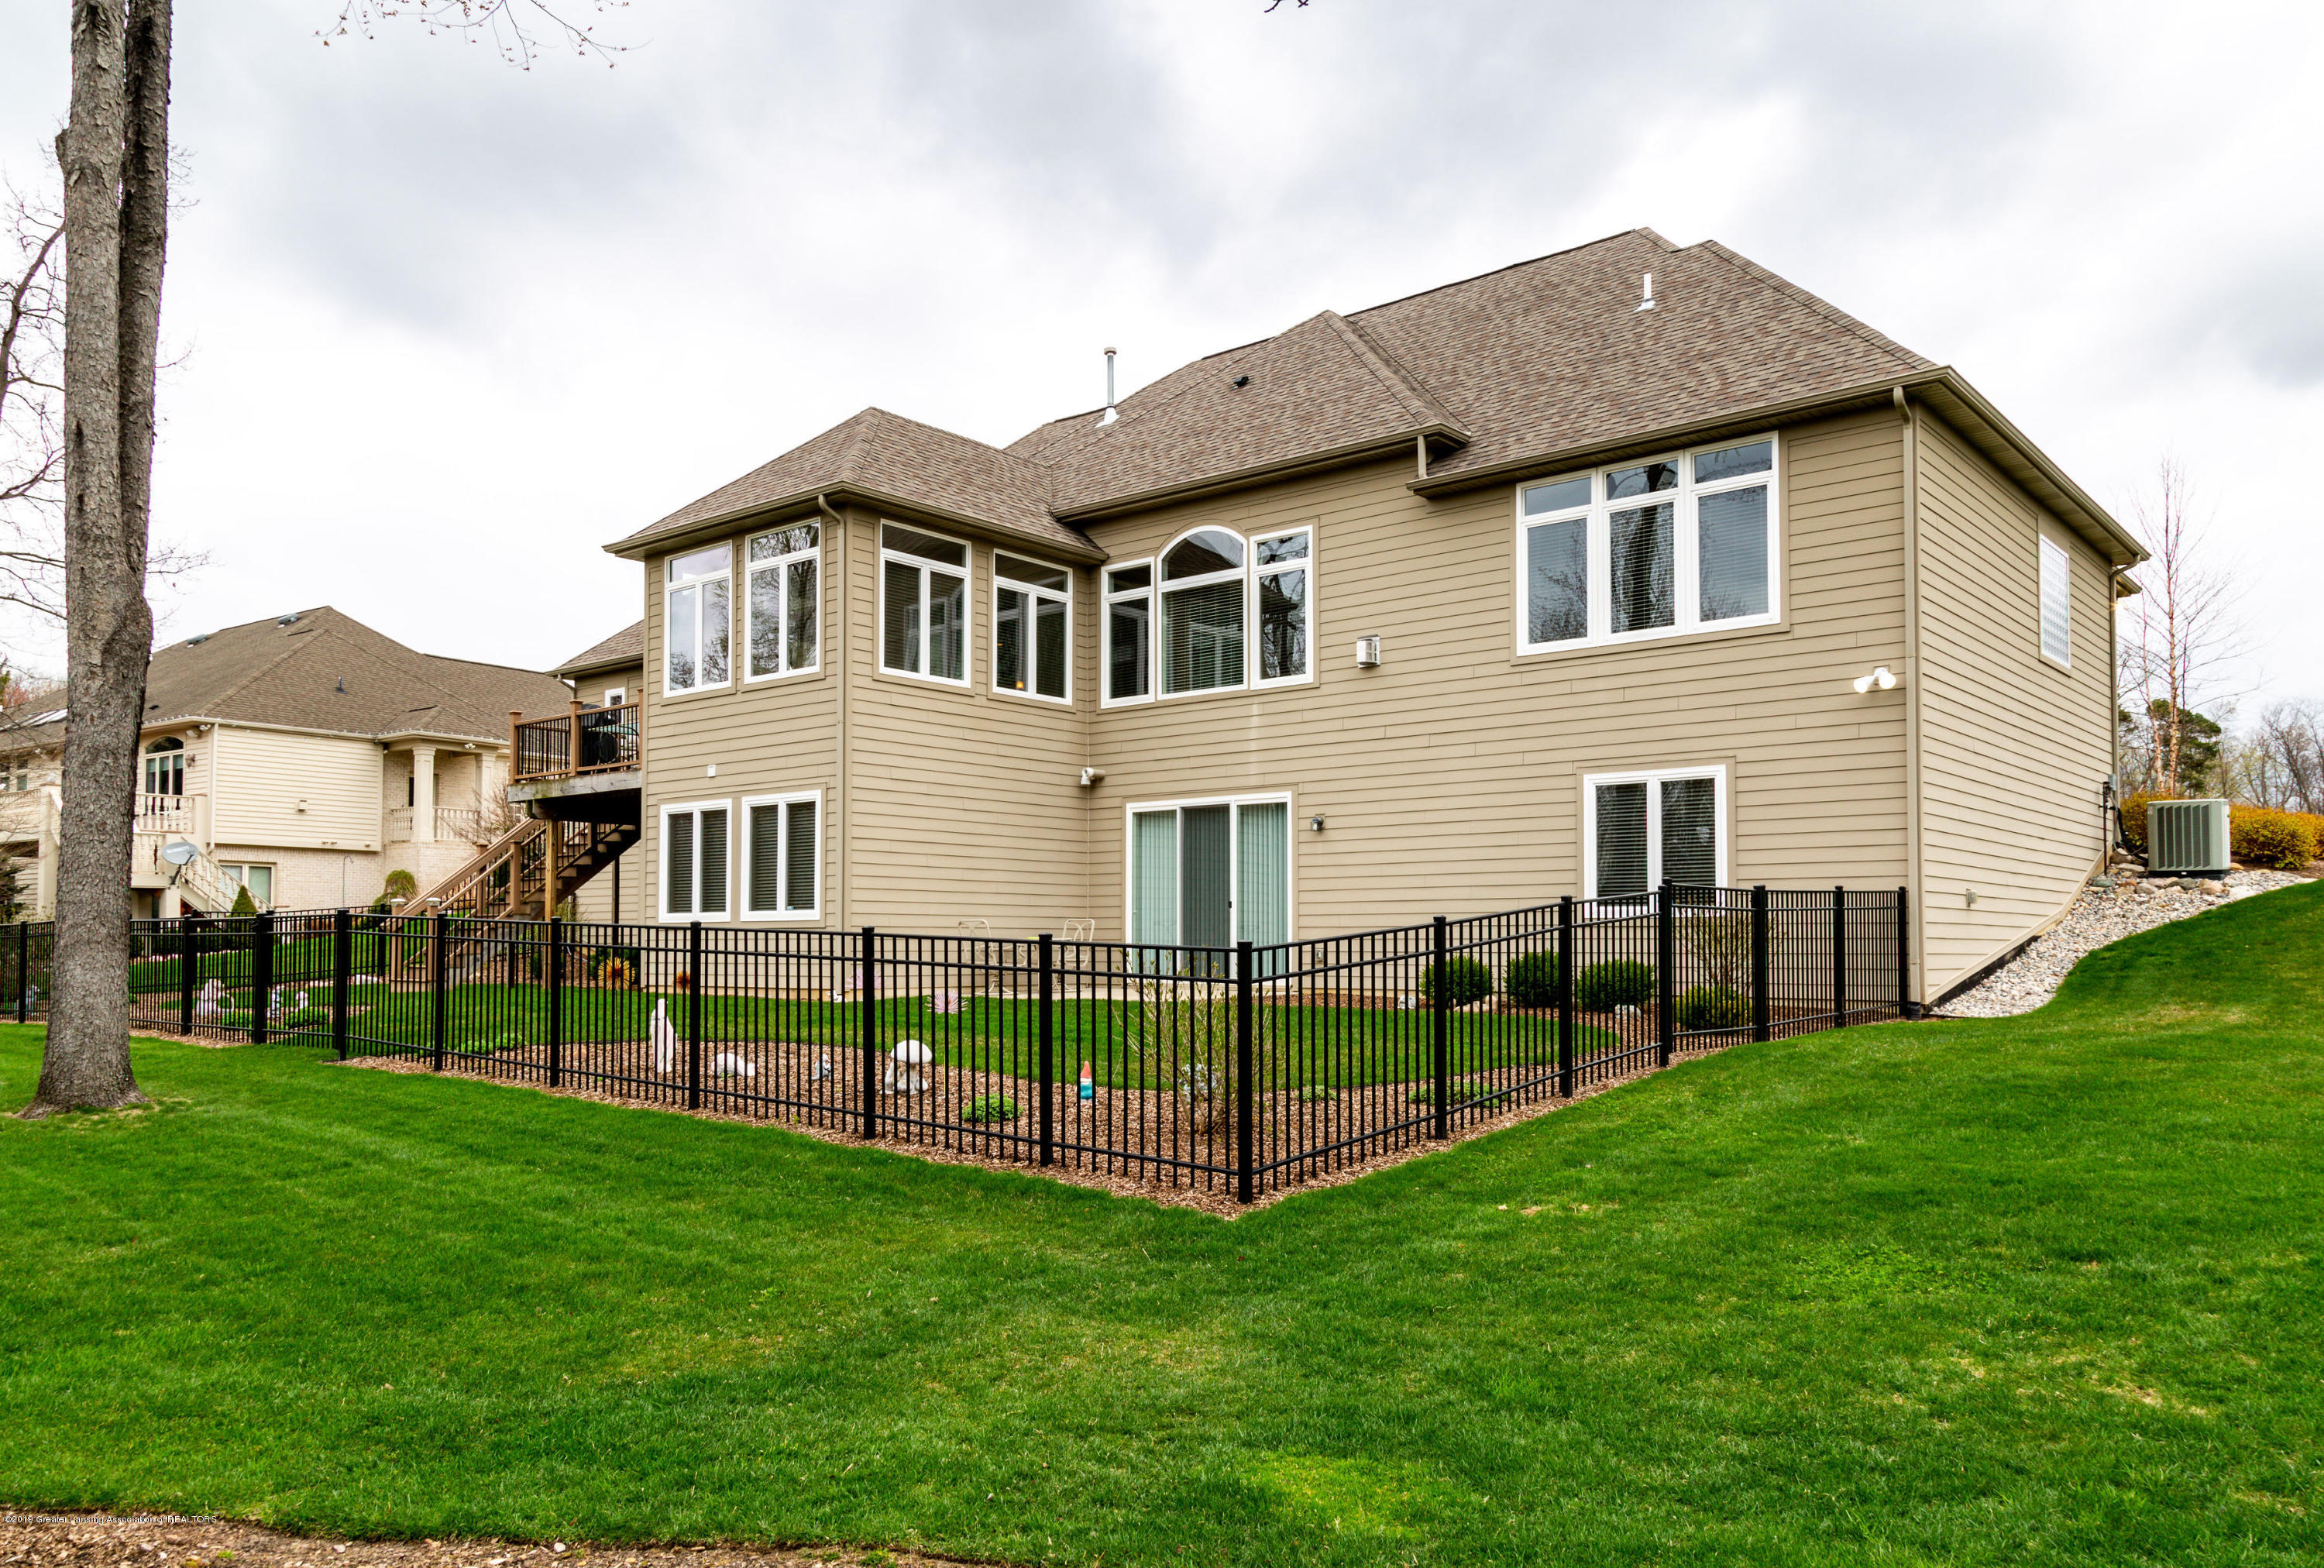 6257 Mereford Ct - 20190426-942A2854 - 40